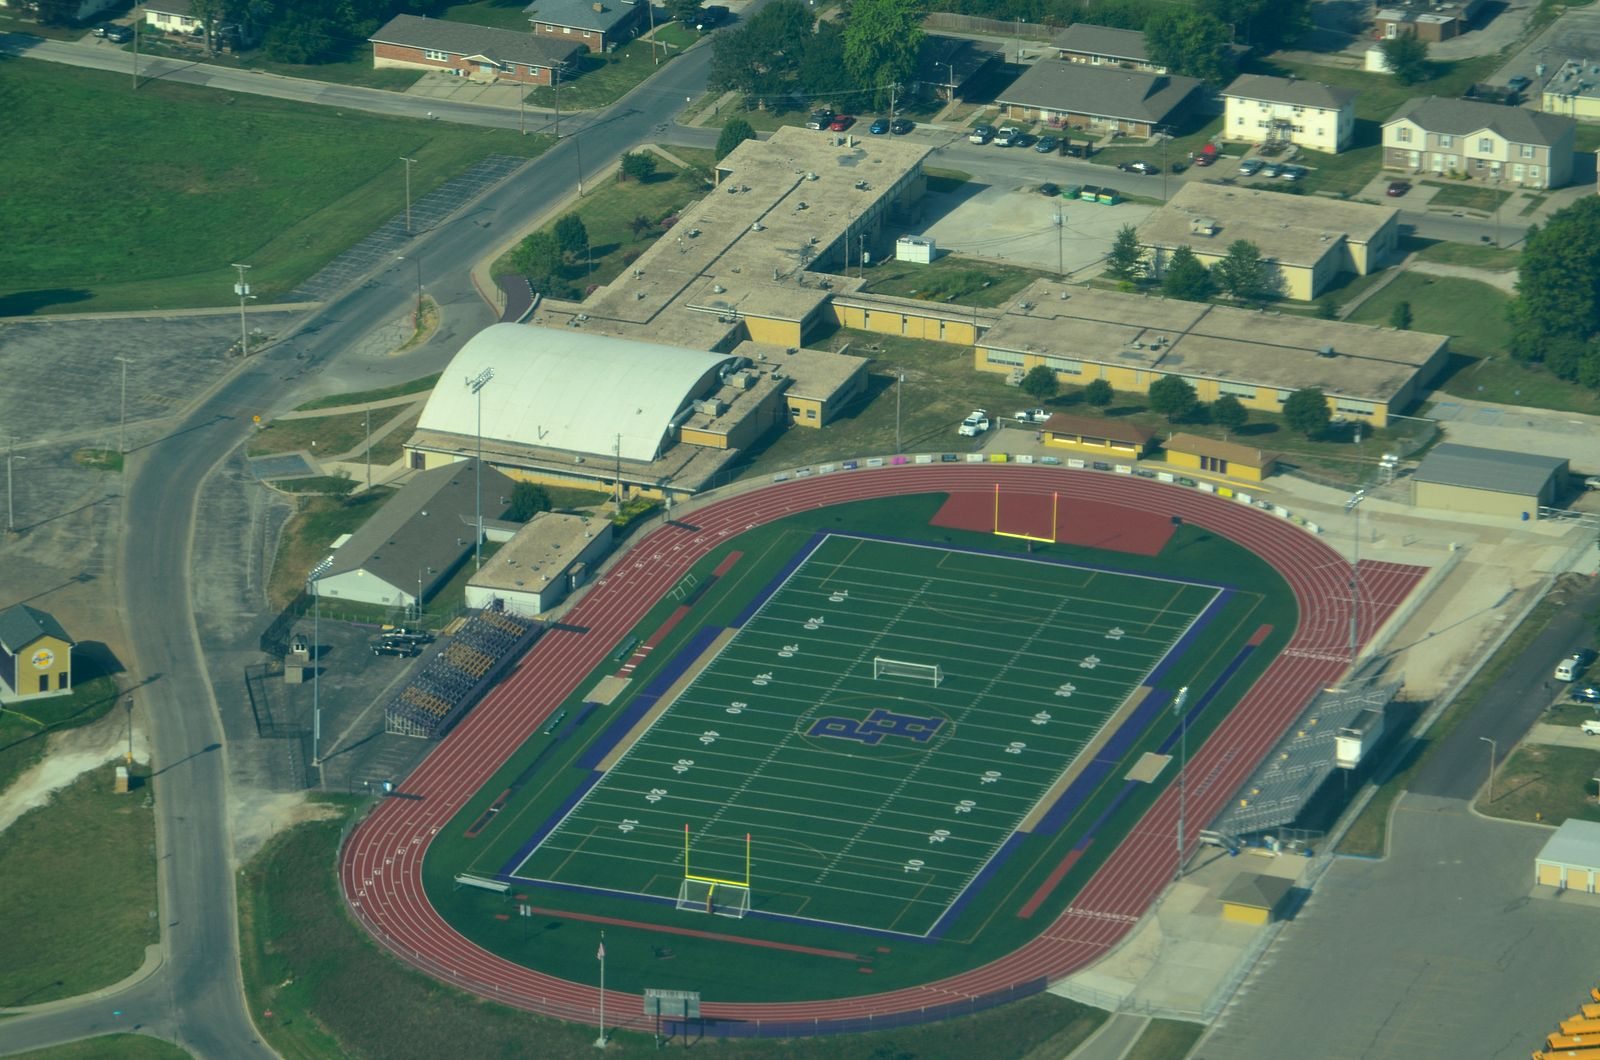 Pleasant_Hill_High_School_Stadium_-_Pleasant_Hill,_Missouri_08-31-2013